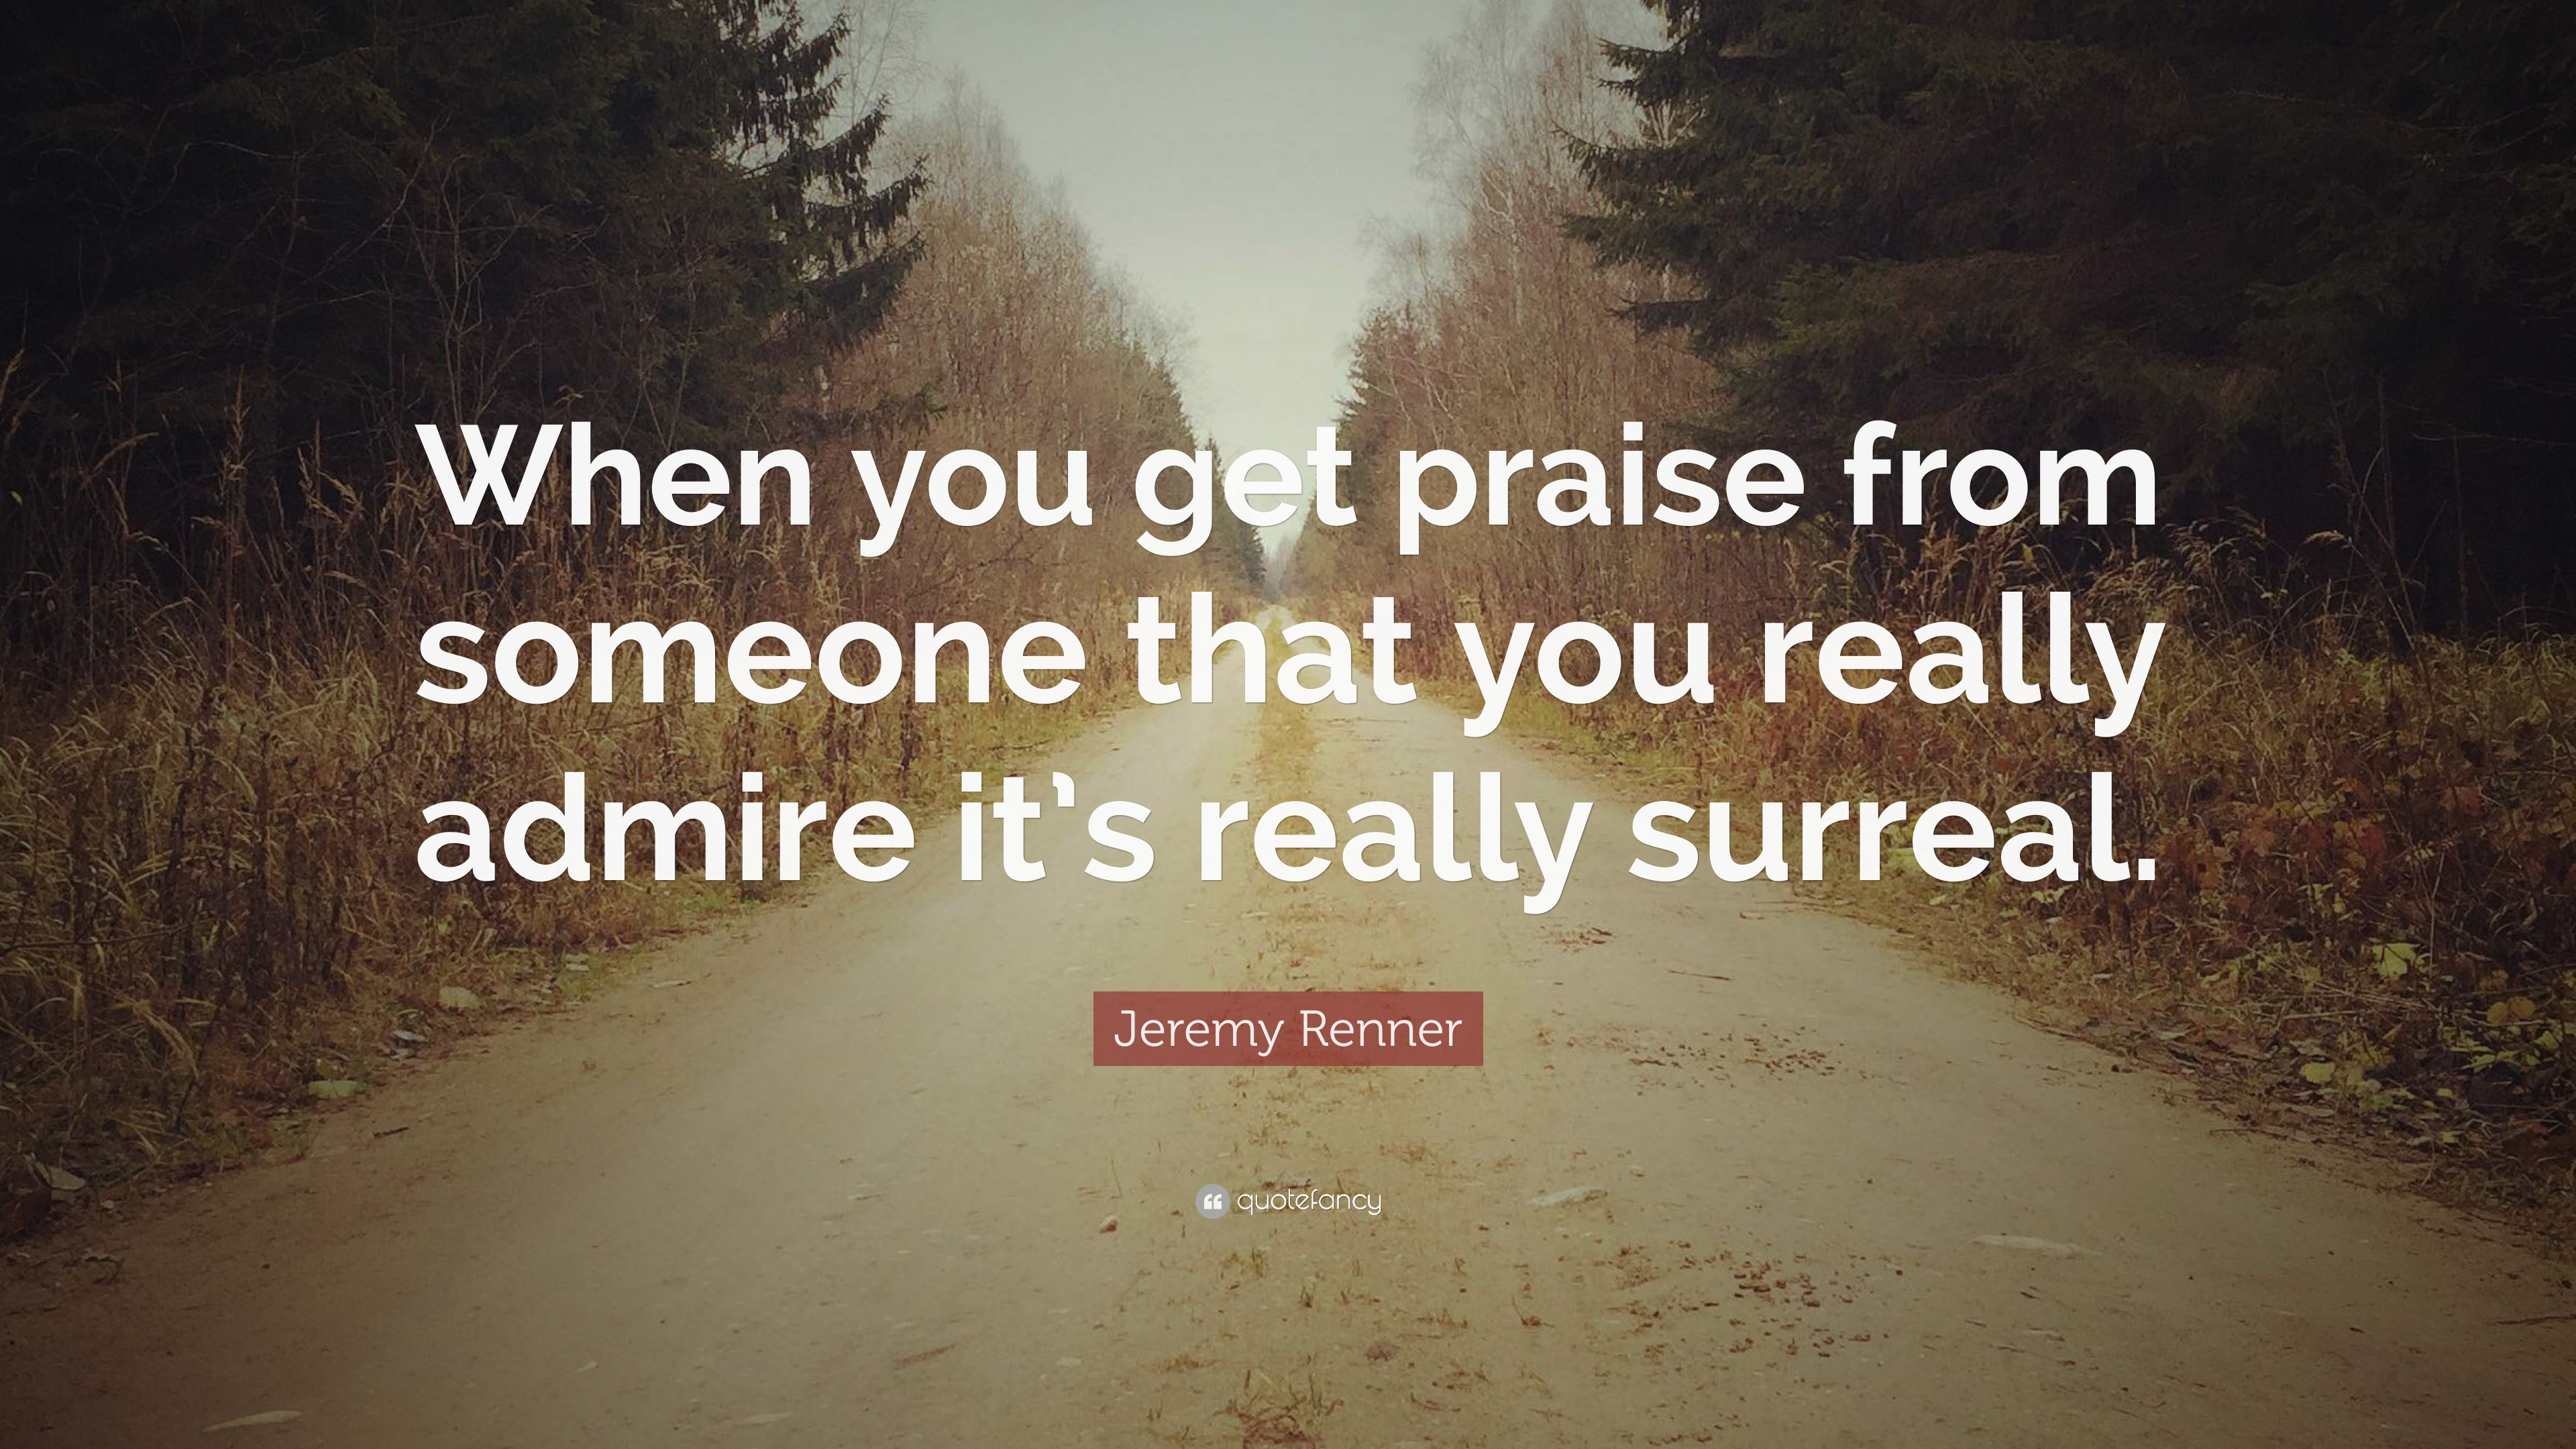 Jeremy Renner Quote When You Get Praise From Someone That You